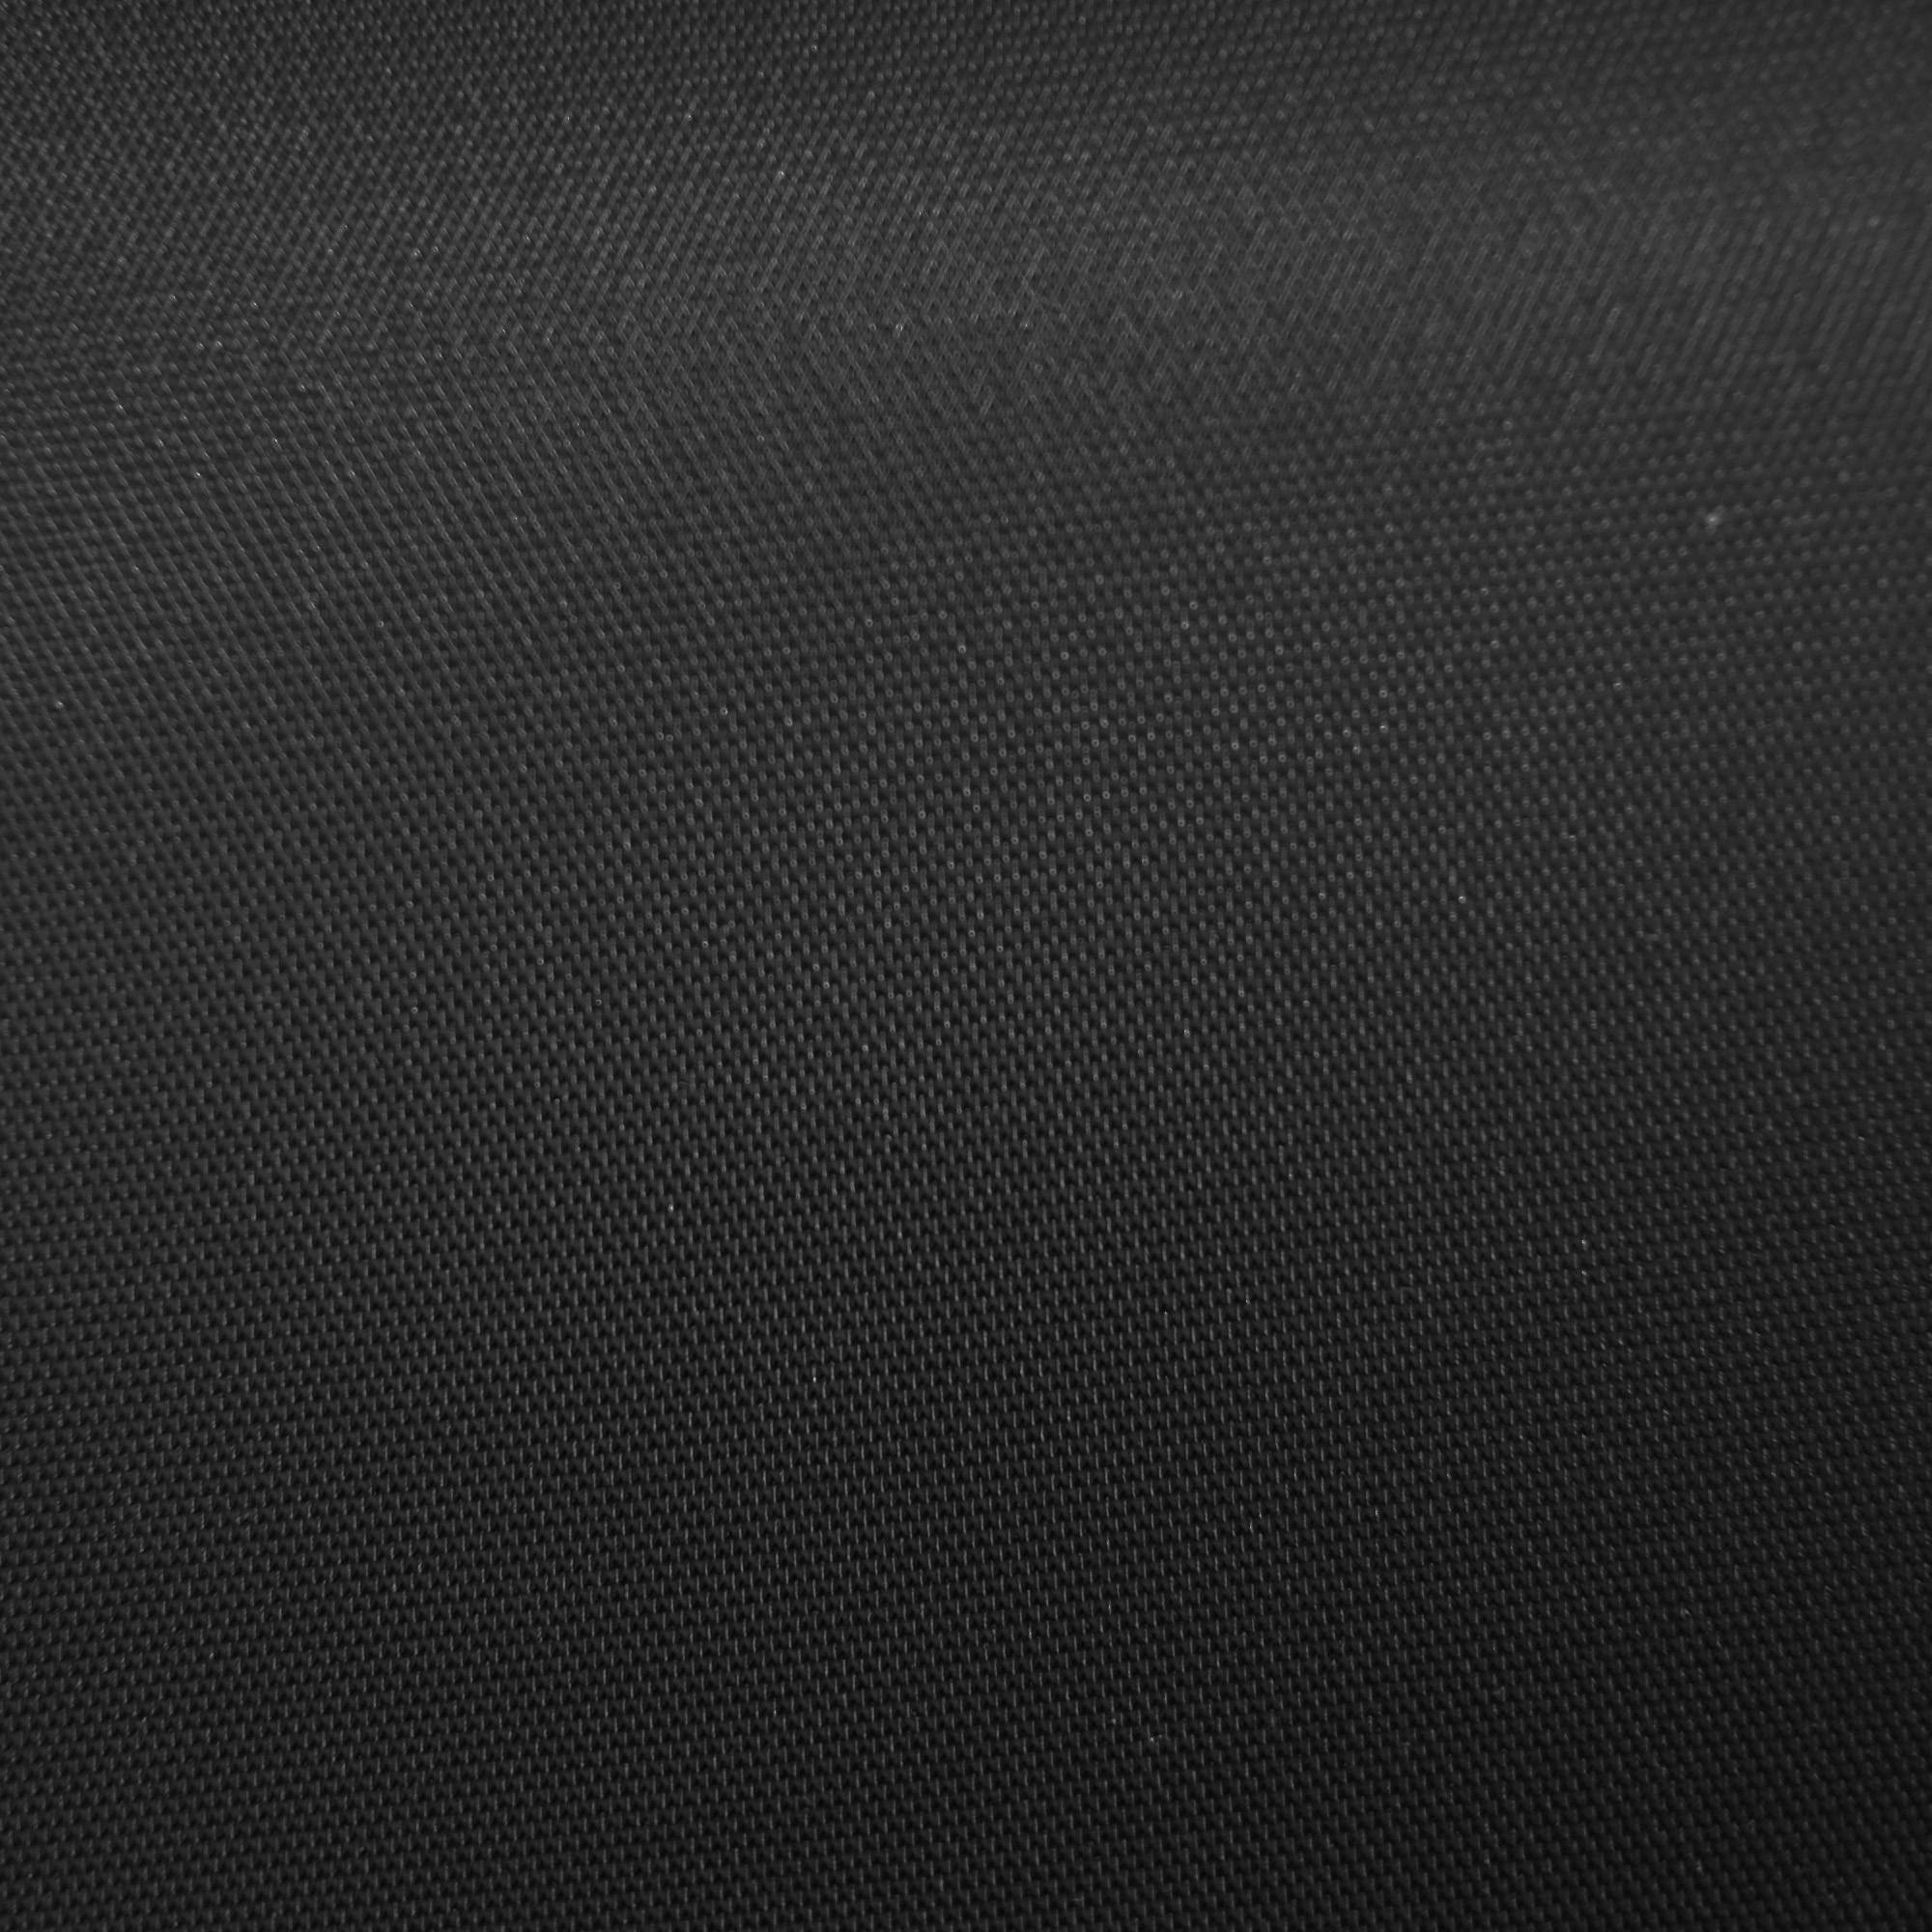 Flat Black Wallpaper - WallpaperSafari